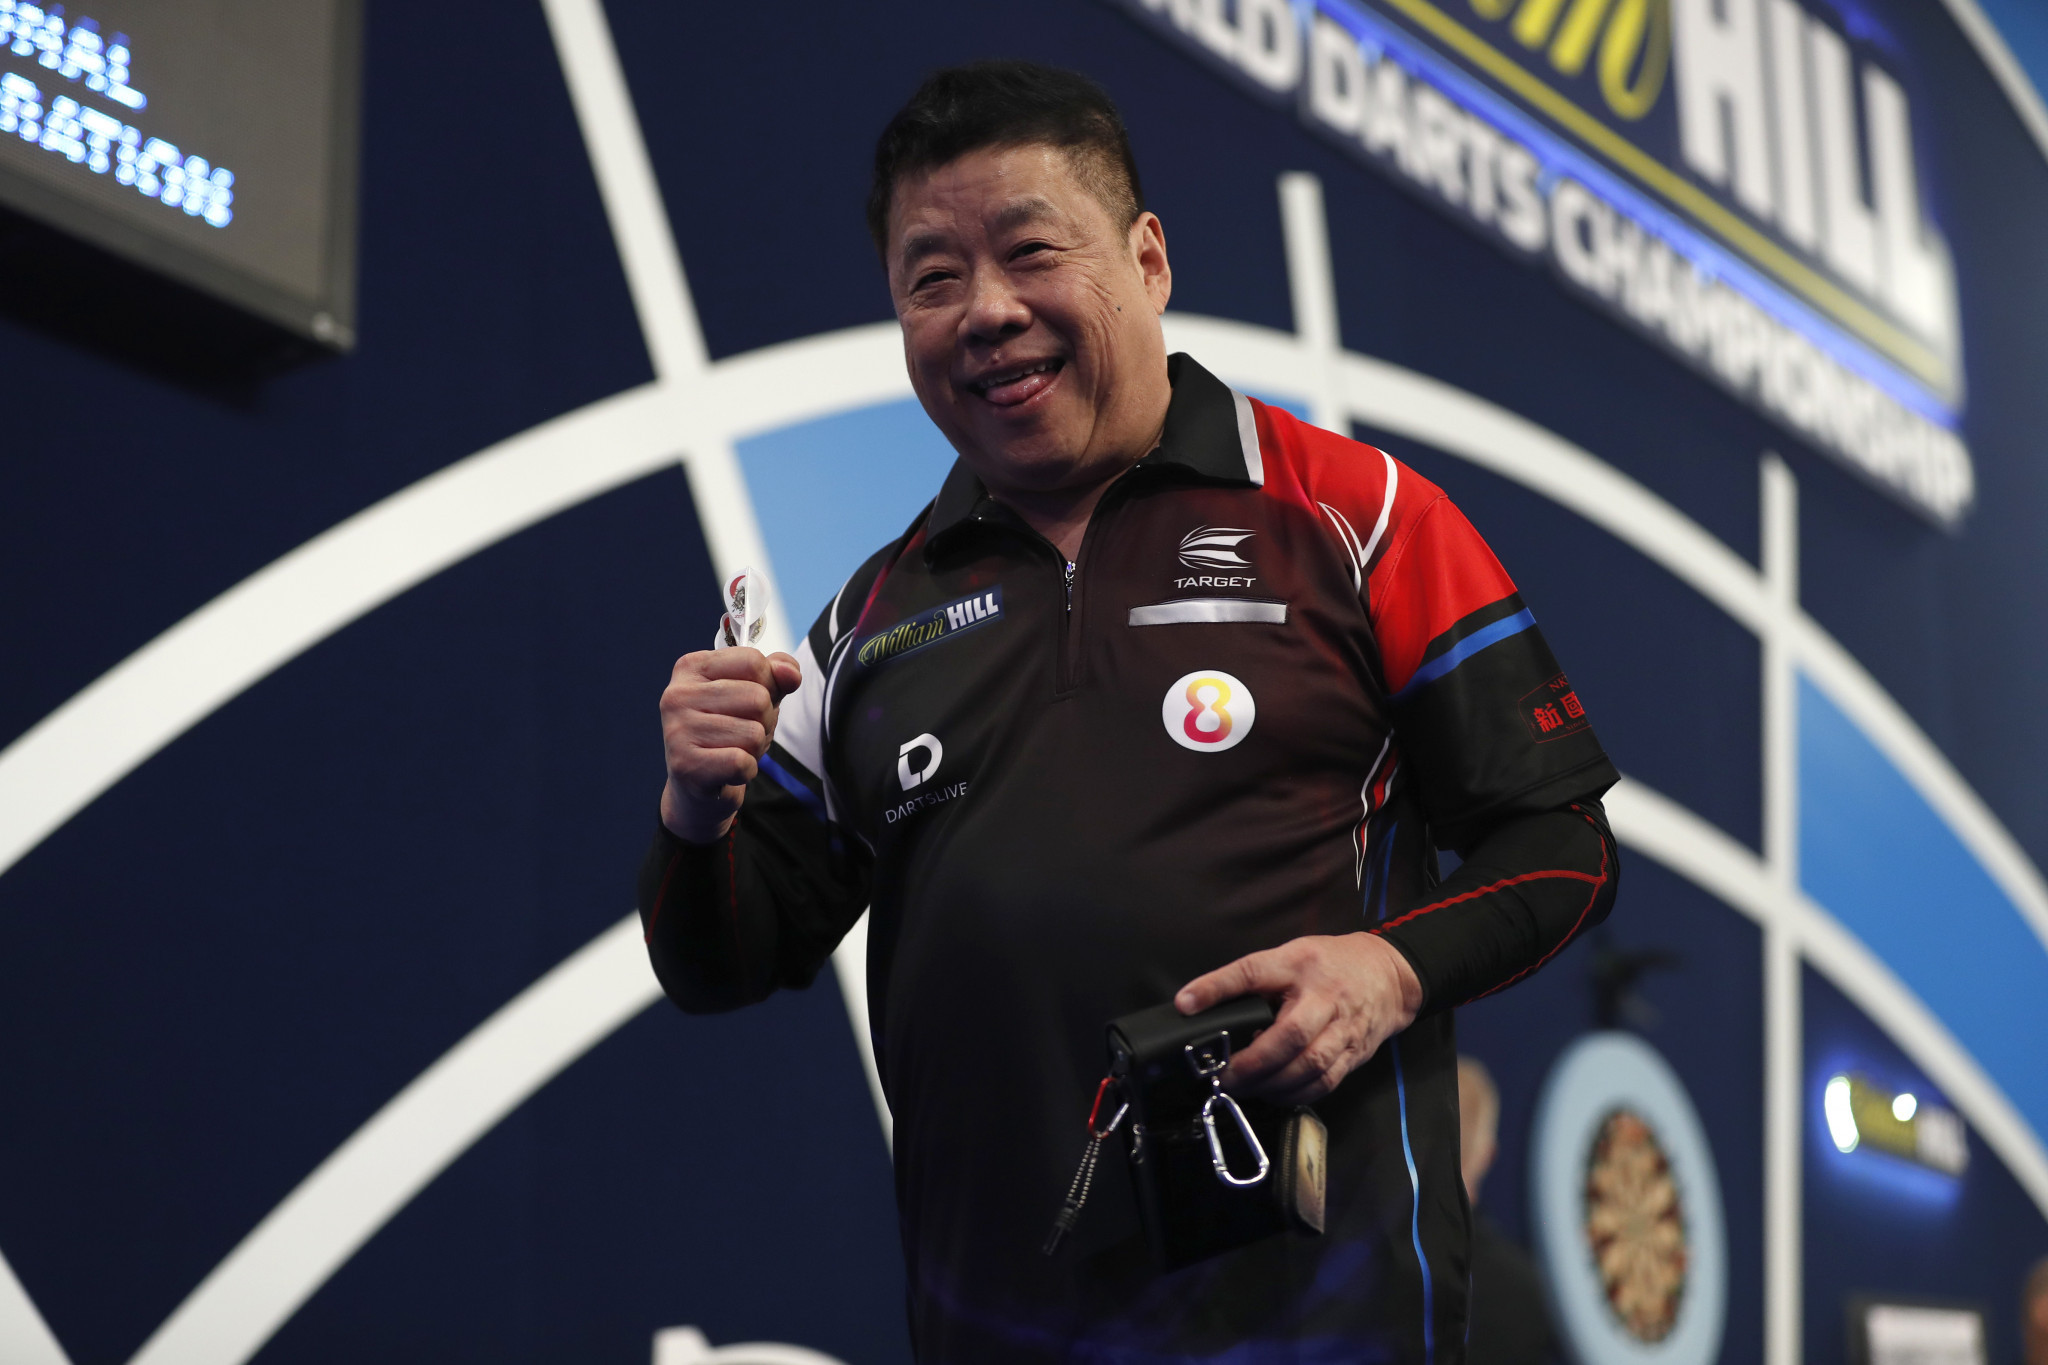 """Lim, 66, claims win """"for the old guys"""" on day four of PDC World Darts Championship"""